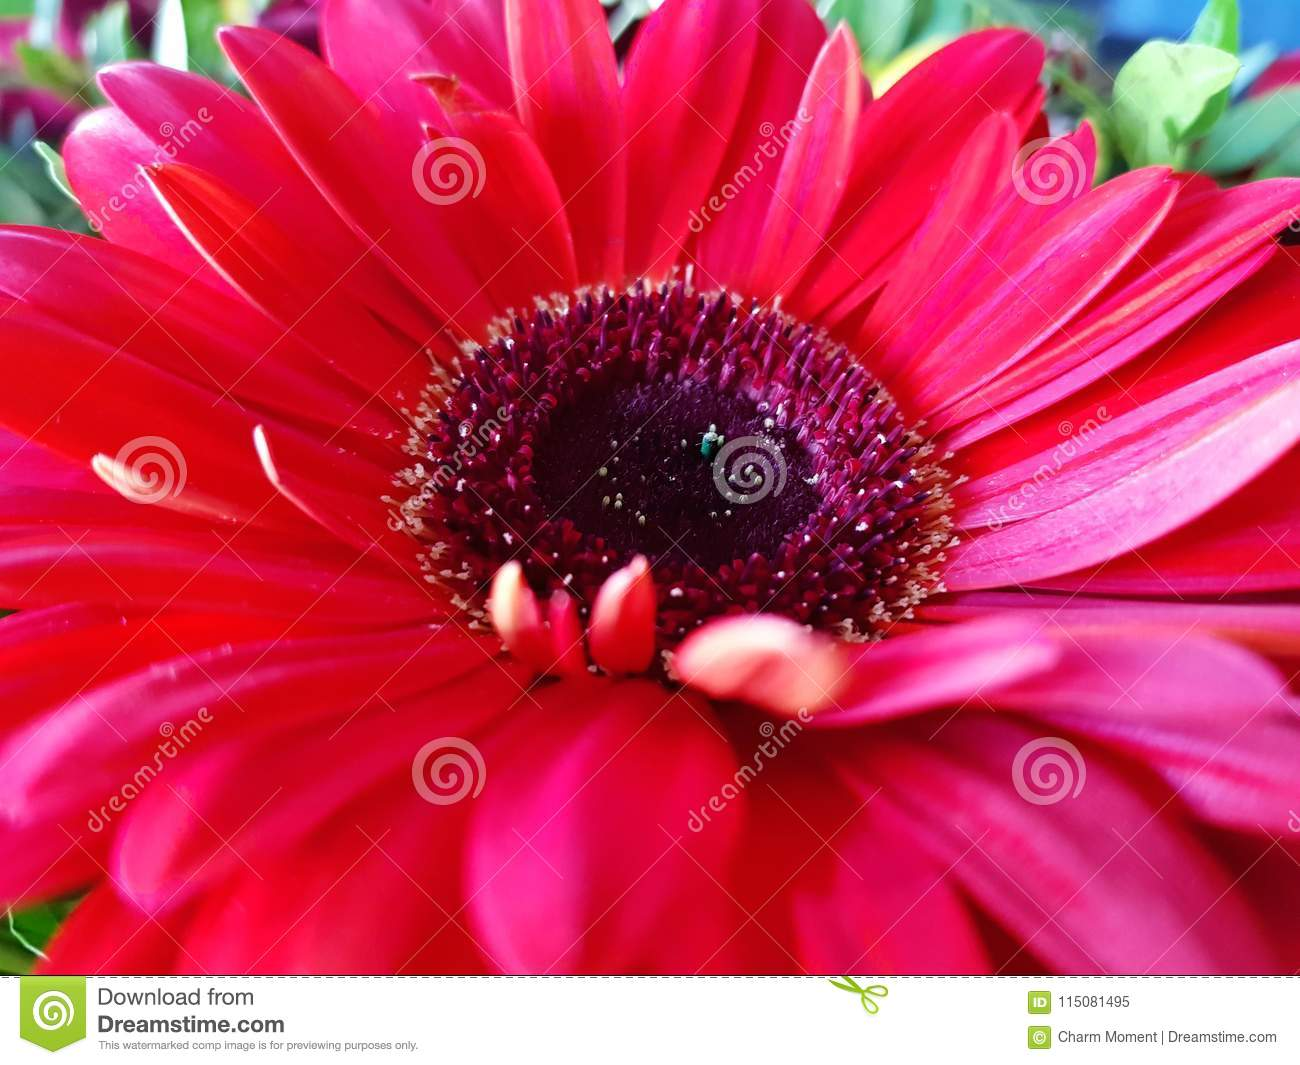 Red Gerbera Flower Closeup View Background Stock Image - Image of ...